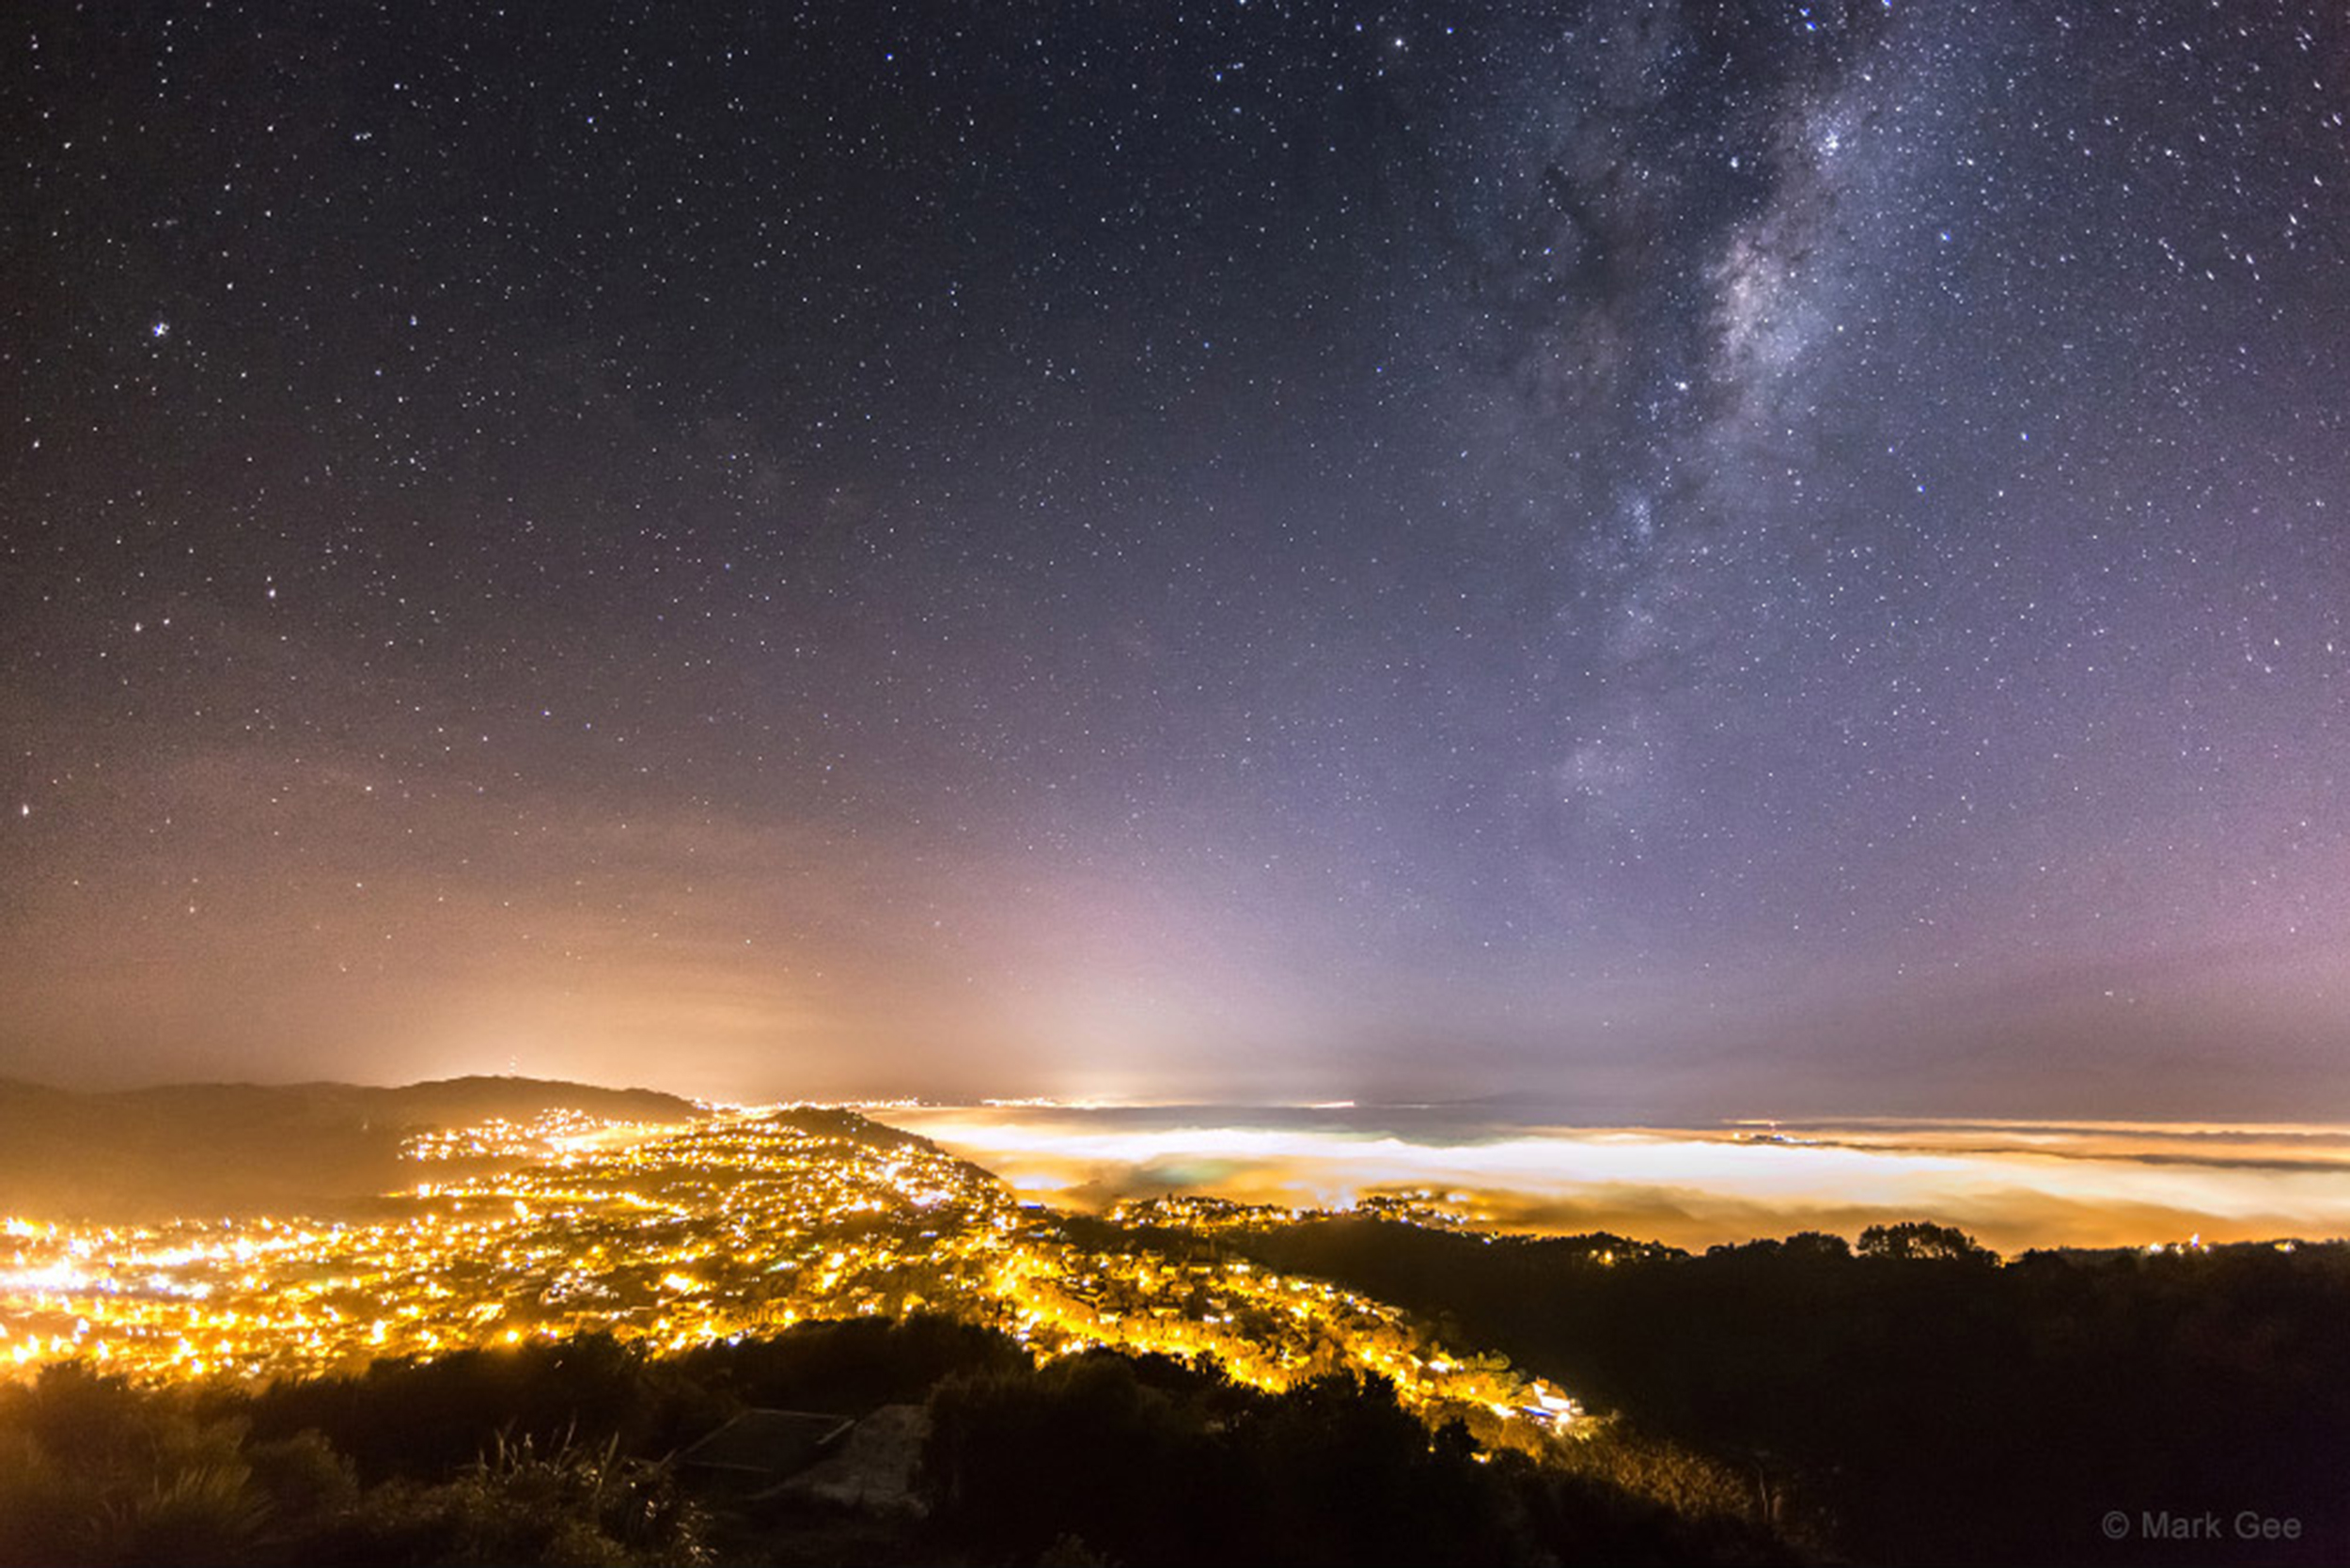 'The World at Night' Reveals Beauties of Earth and Sky - NBC News